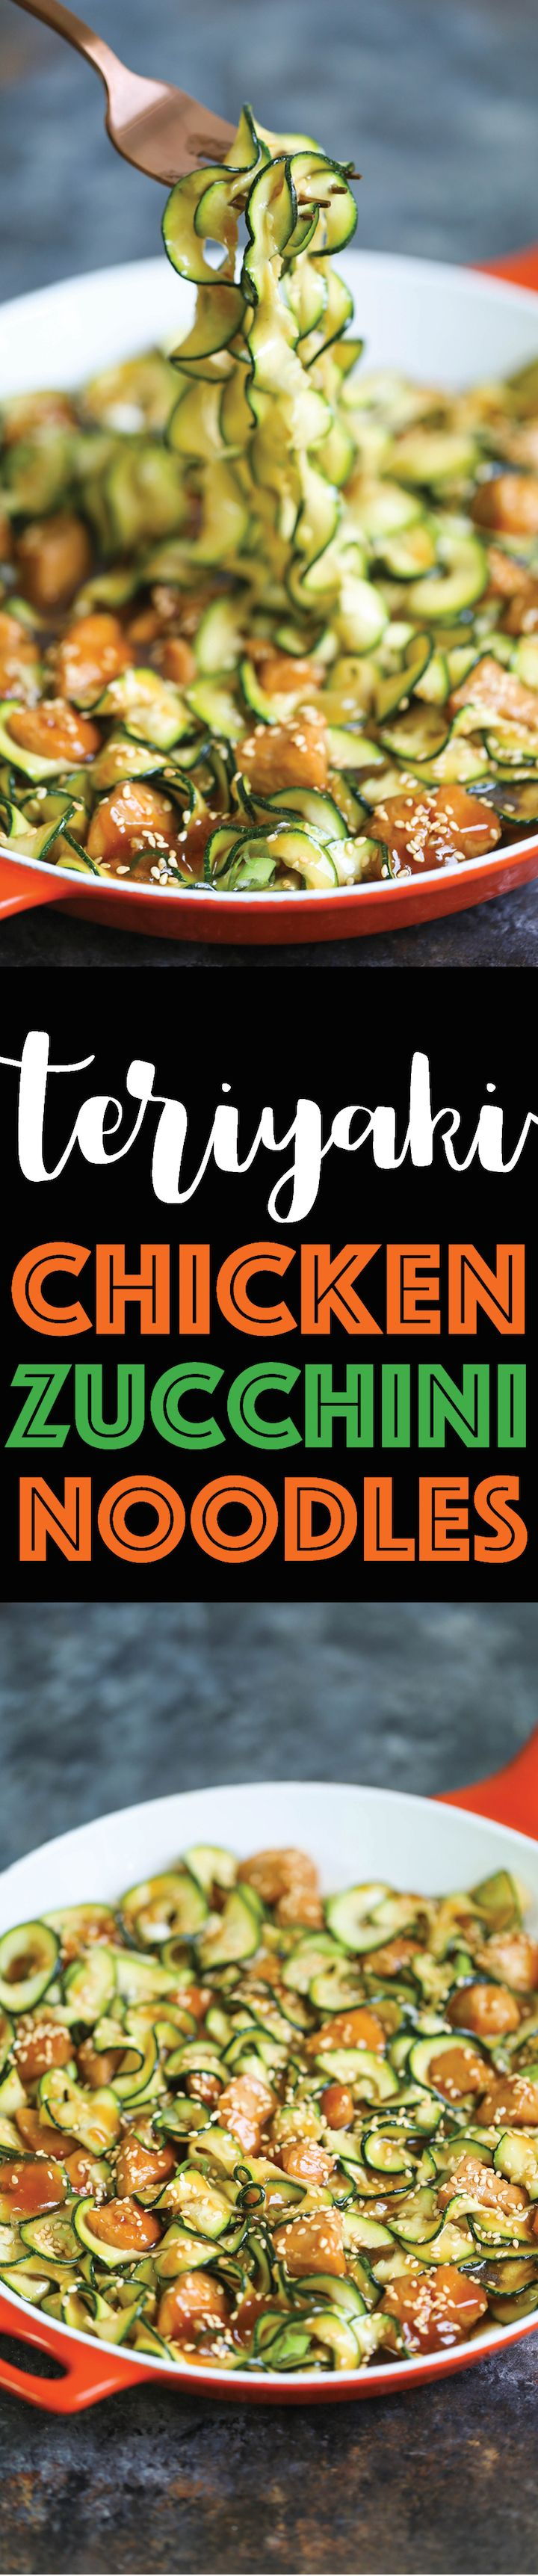 Teriyaki Chicken Zucchini Noodles - The easiest 10-minute HEALTHY and LOW-CARB Asian zucchini noodles with a homemade teriyaki sauce made from scratch!!!